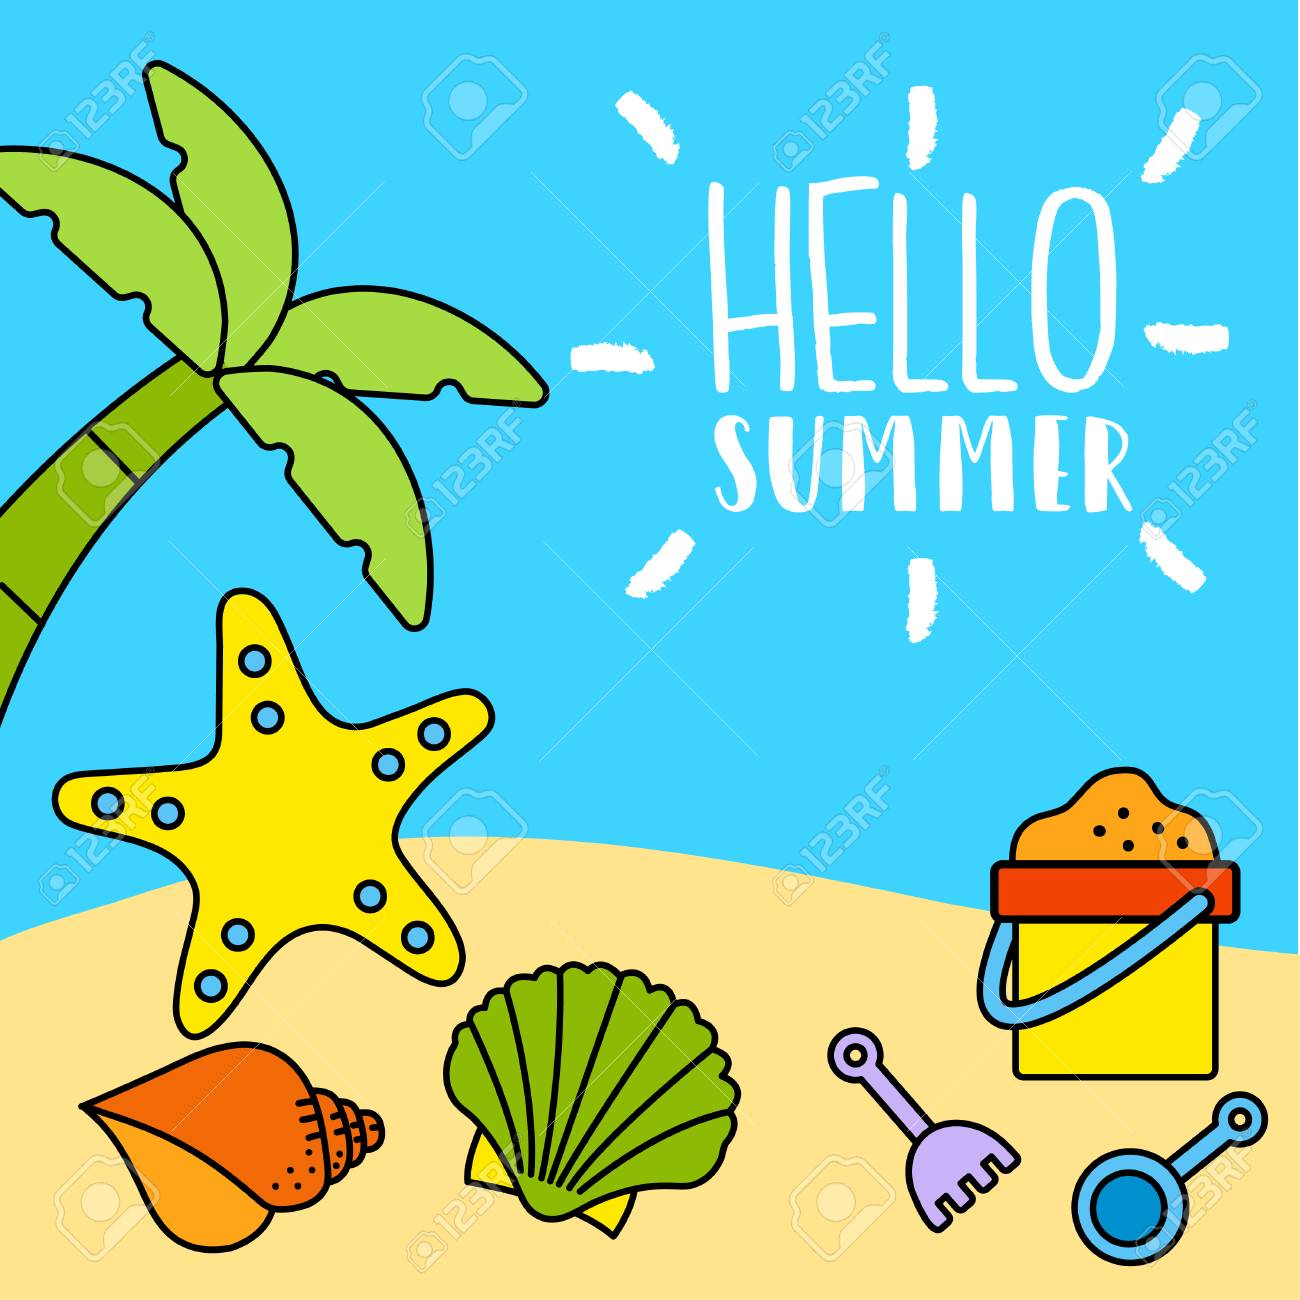 Gentil Real Cool Hello Summer Background. Vector Illustration Stock Vector    74063558